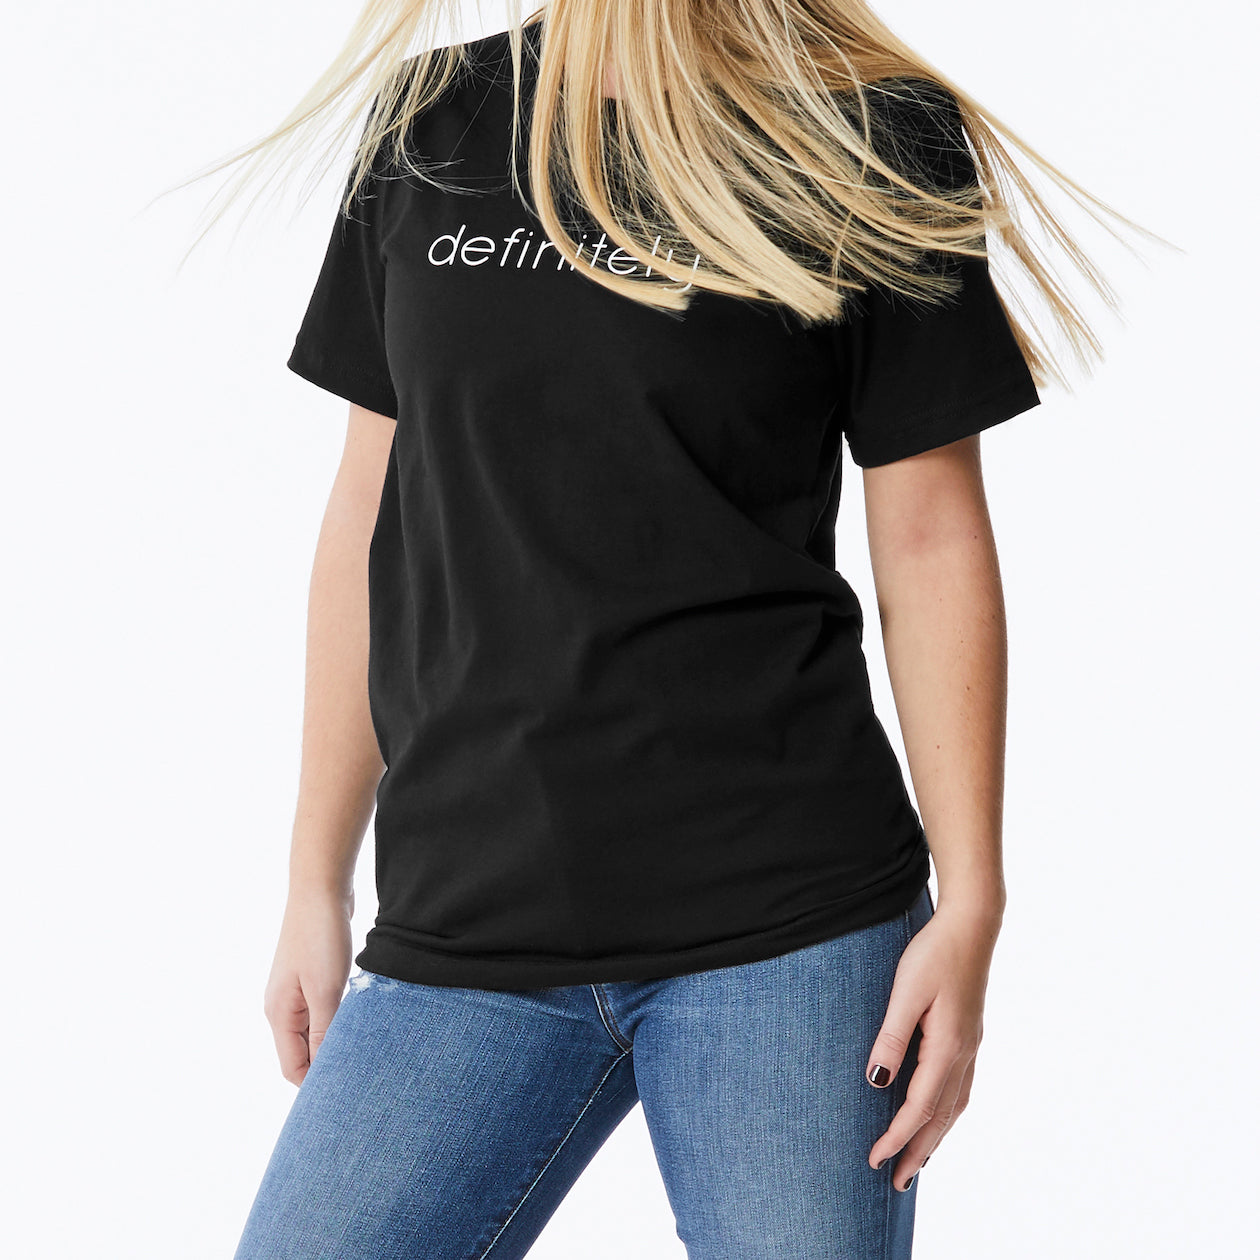 c'est beau1872 definitely logo short sleeve tshirt in black